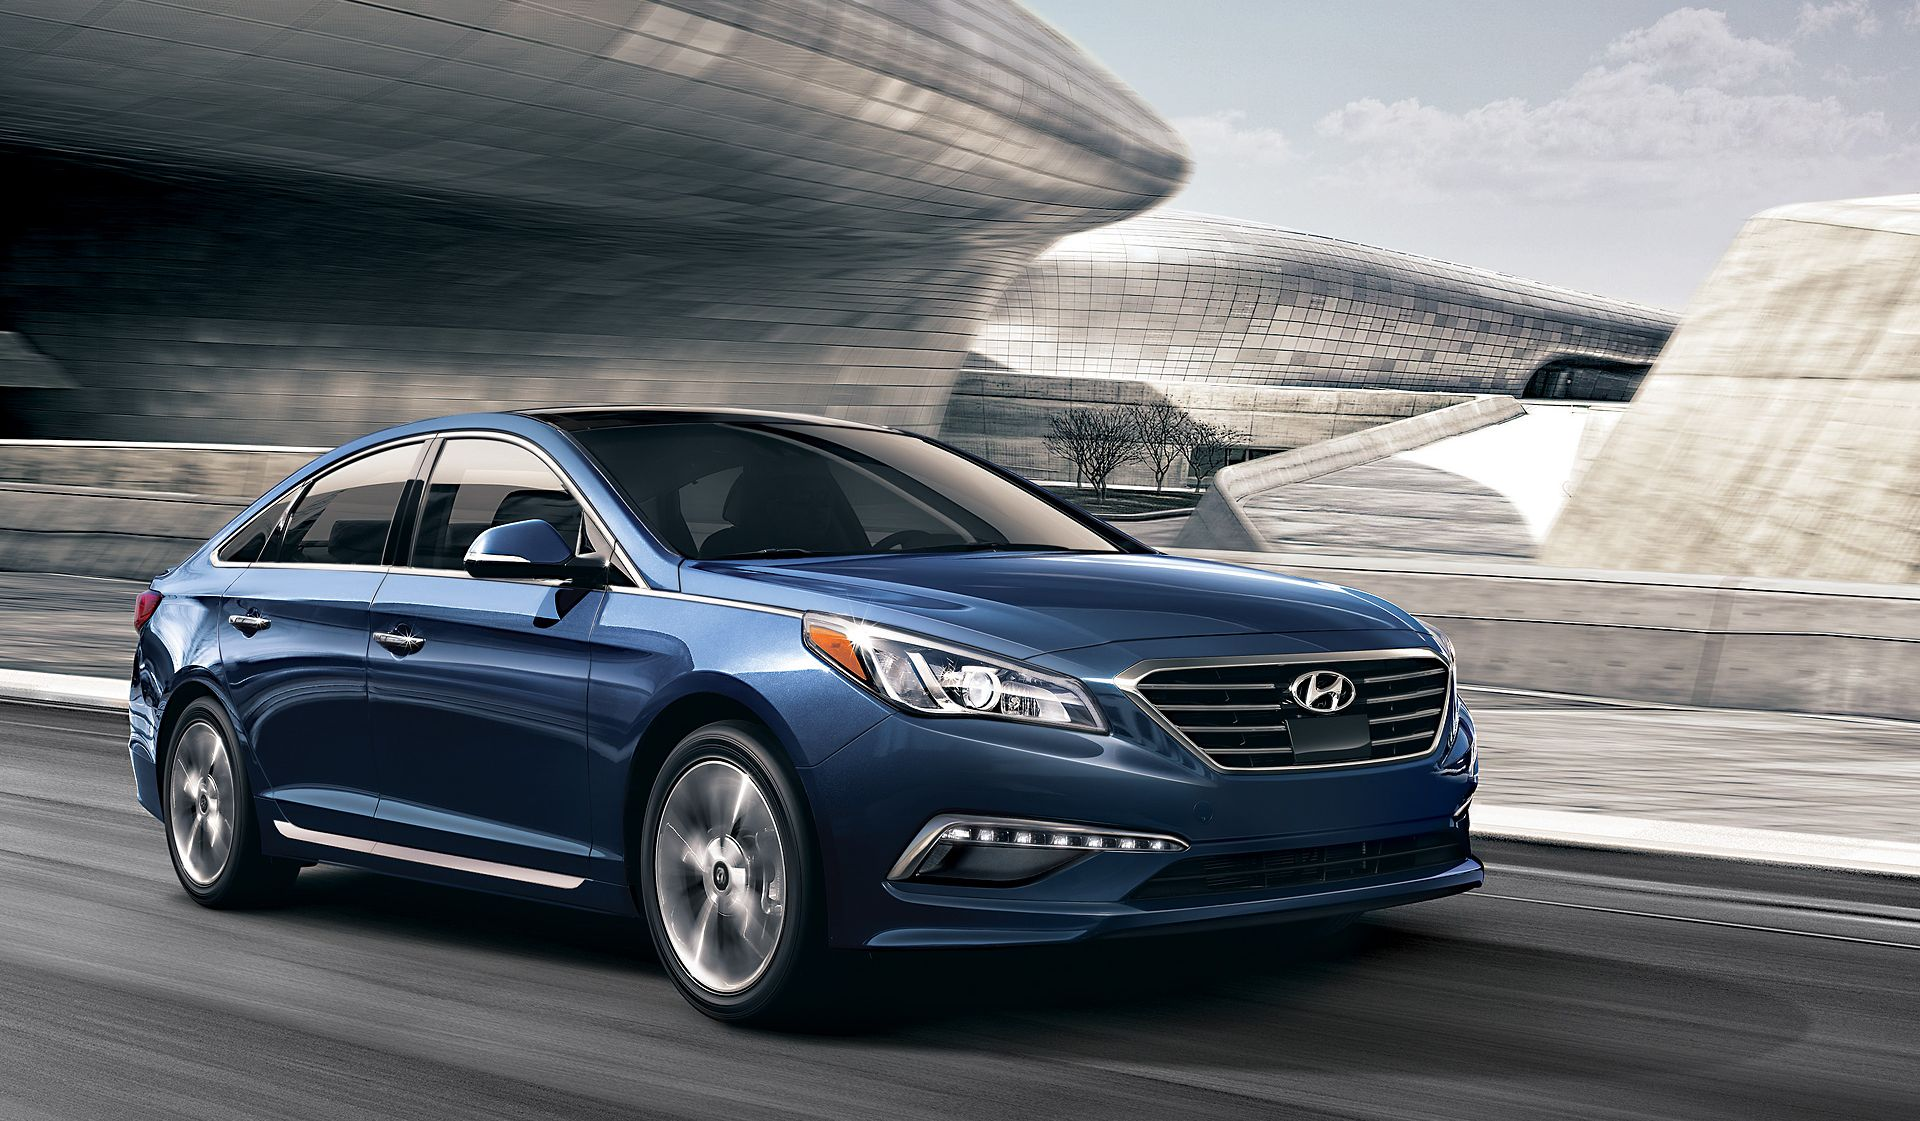 Certified Pre-Owned Hyundai Vehicles for Sale near Washington, DC